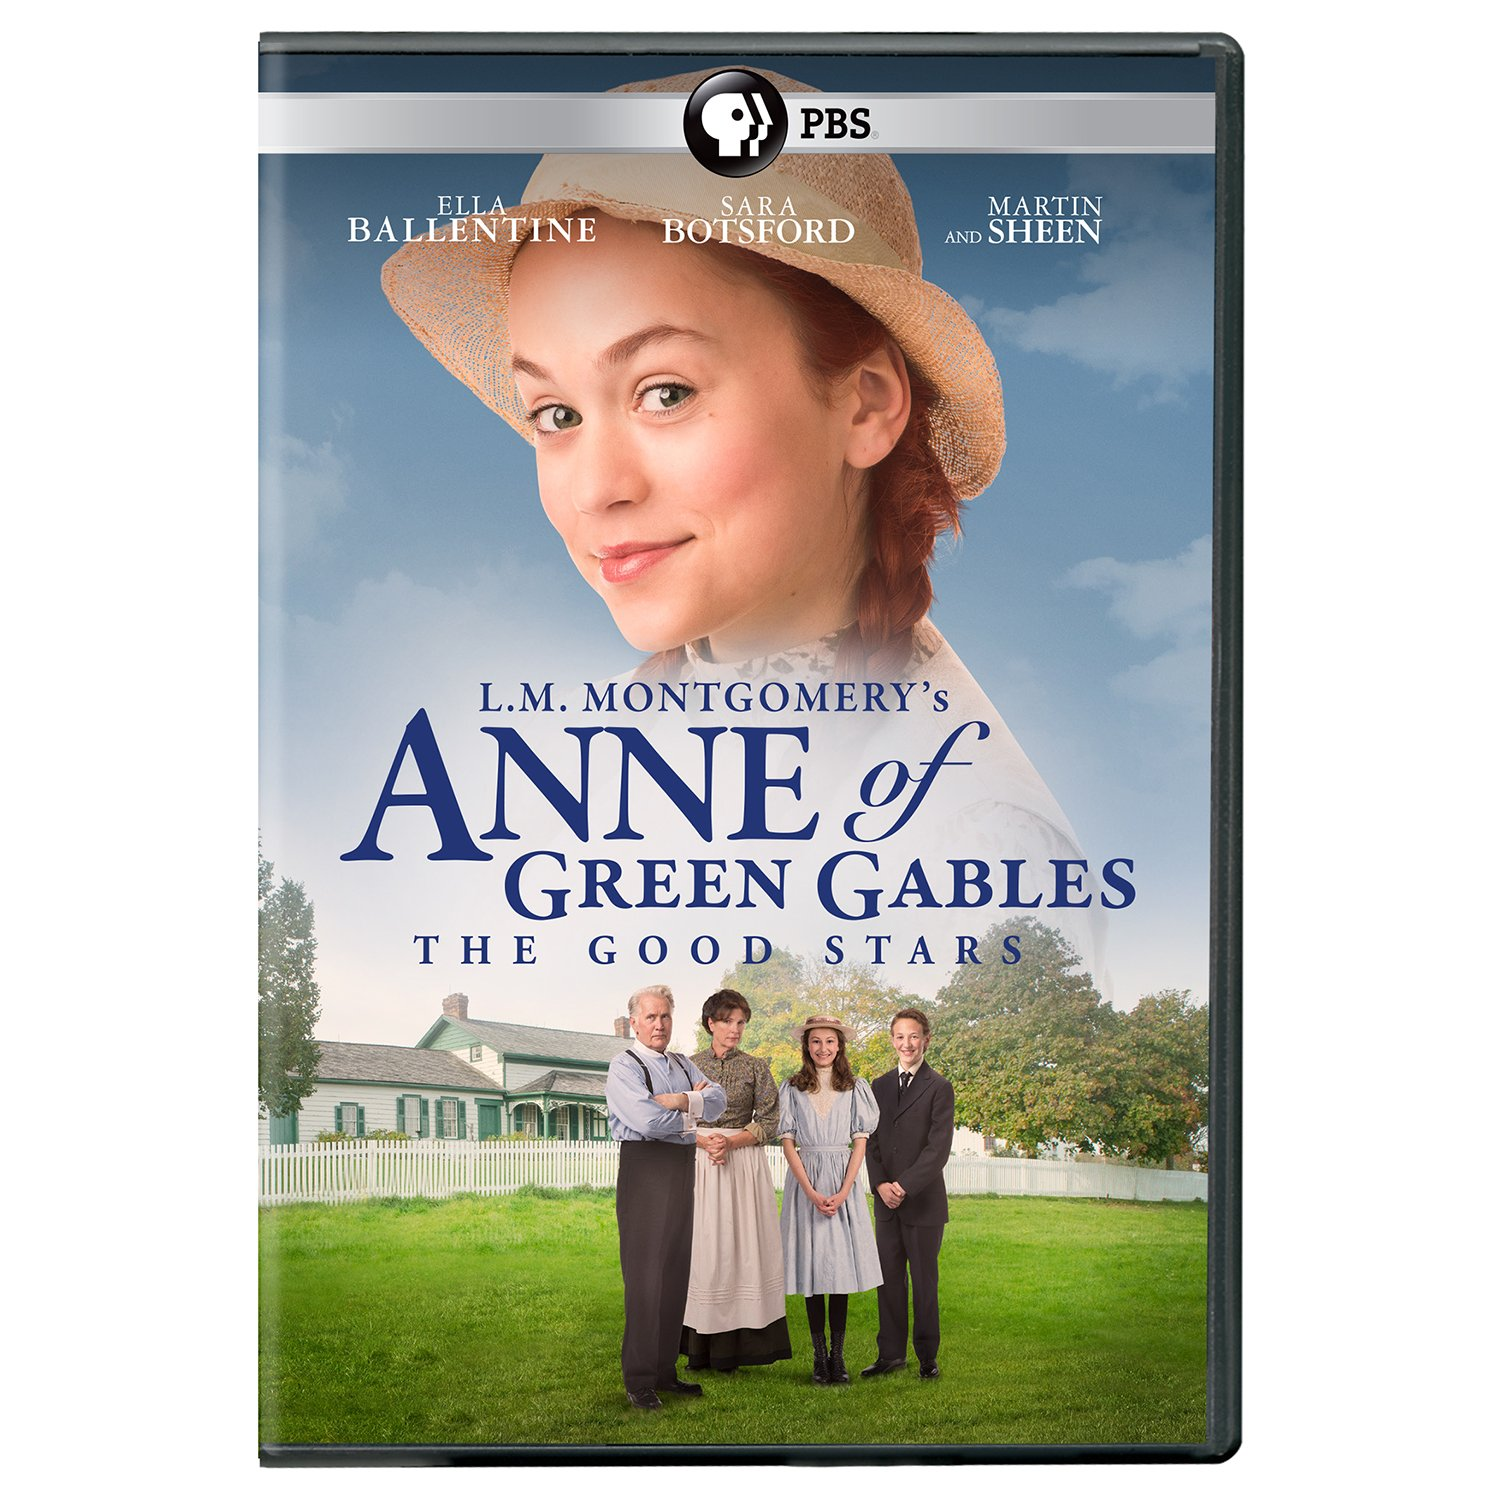 Book Cover: L.M. Montgomery's Anne of Green Gables The Good Stars DVD